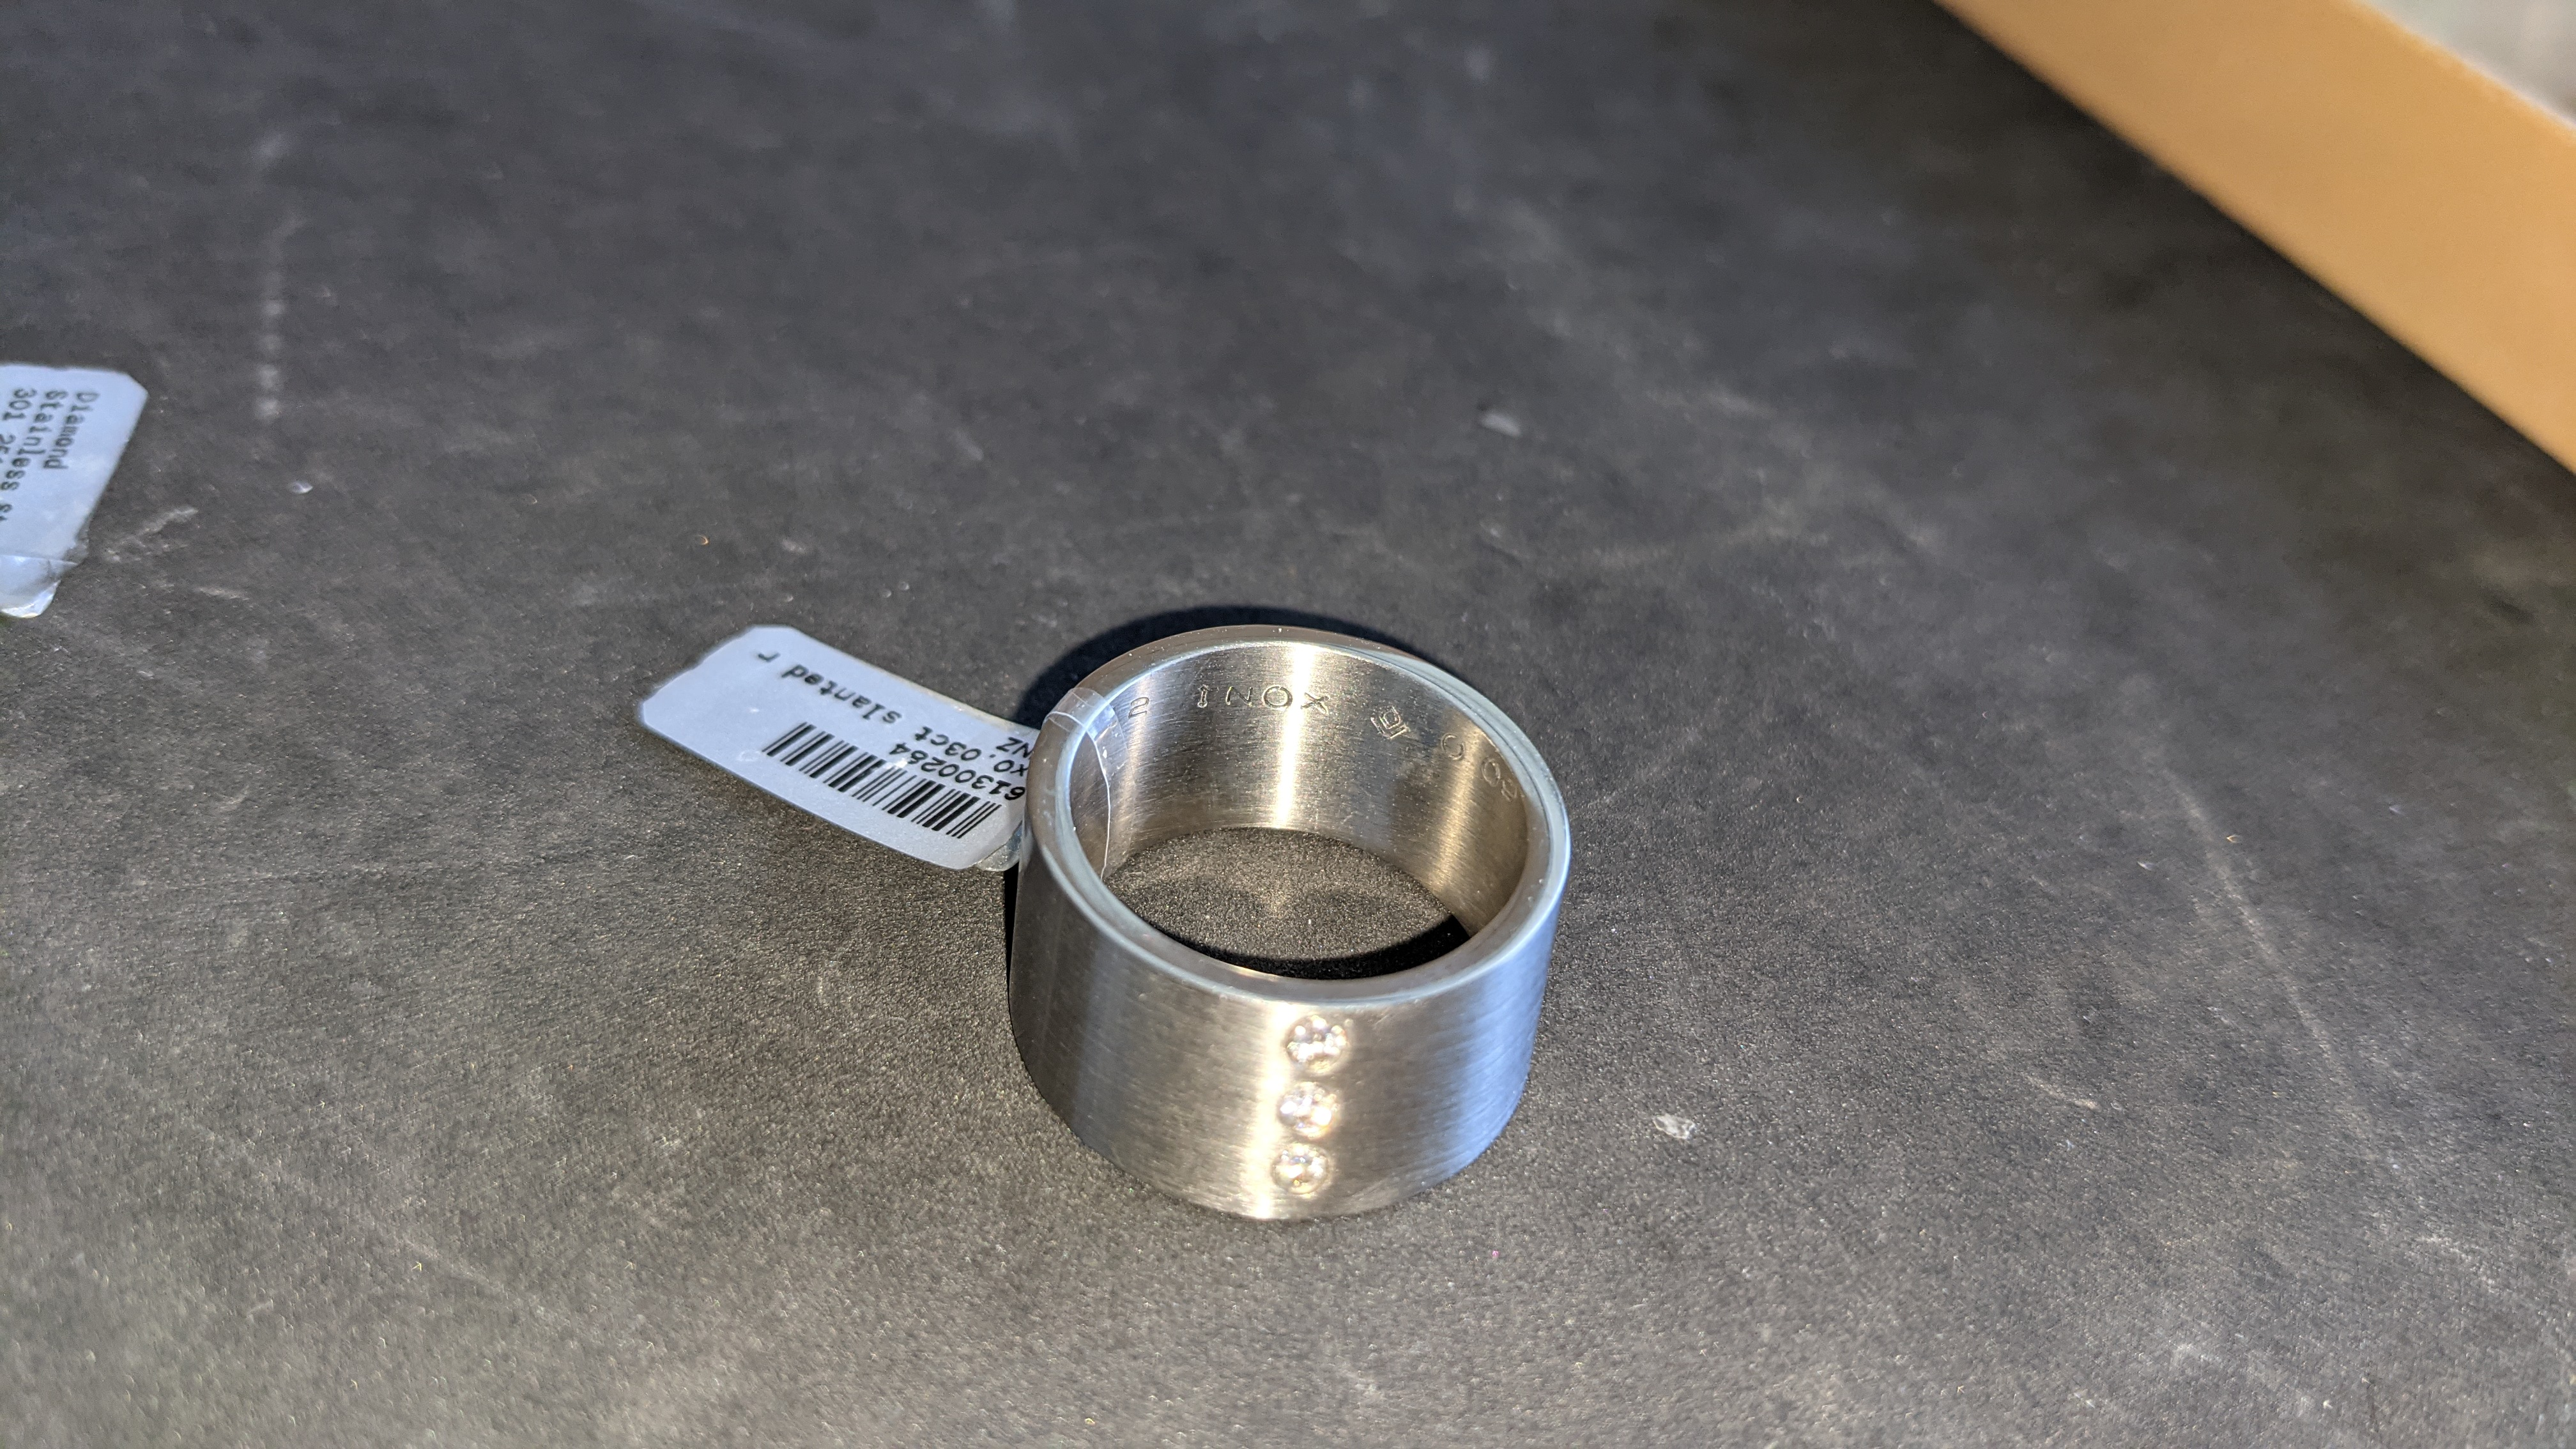 3 off assorted stainless steel & diamond rings with RRPs of £360, £378 & £379. Total RRP £1,117 - Image 6 of 14